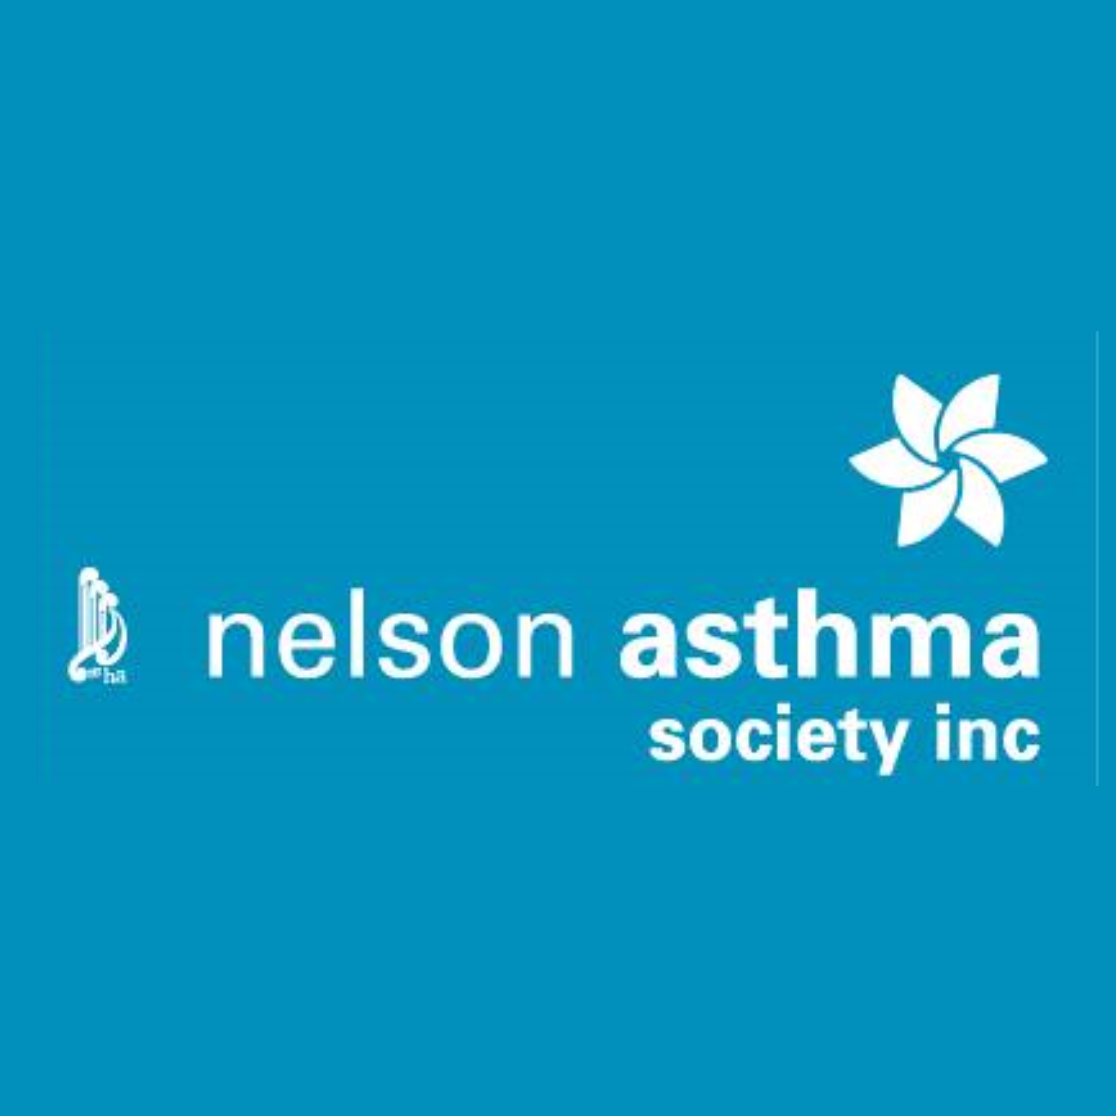 nelson asthma society.png